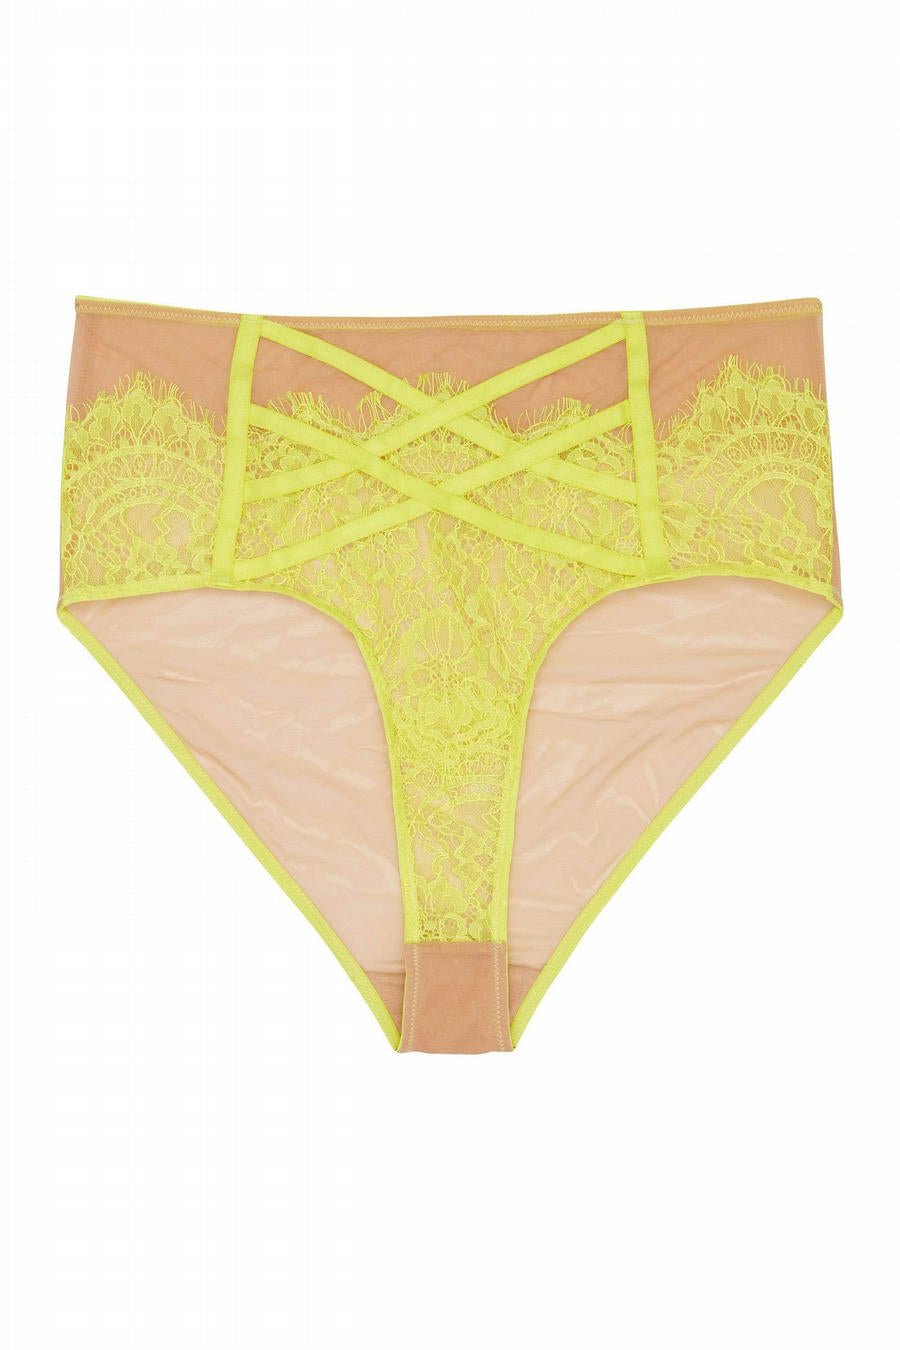 Gabi Fresh Kinsley Brief - sizes 14 + 24 left!